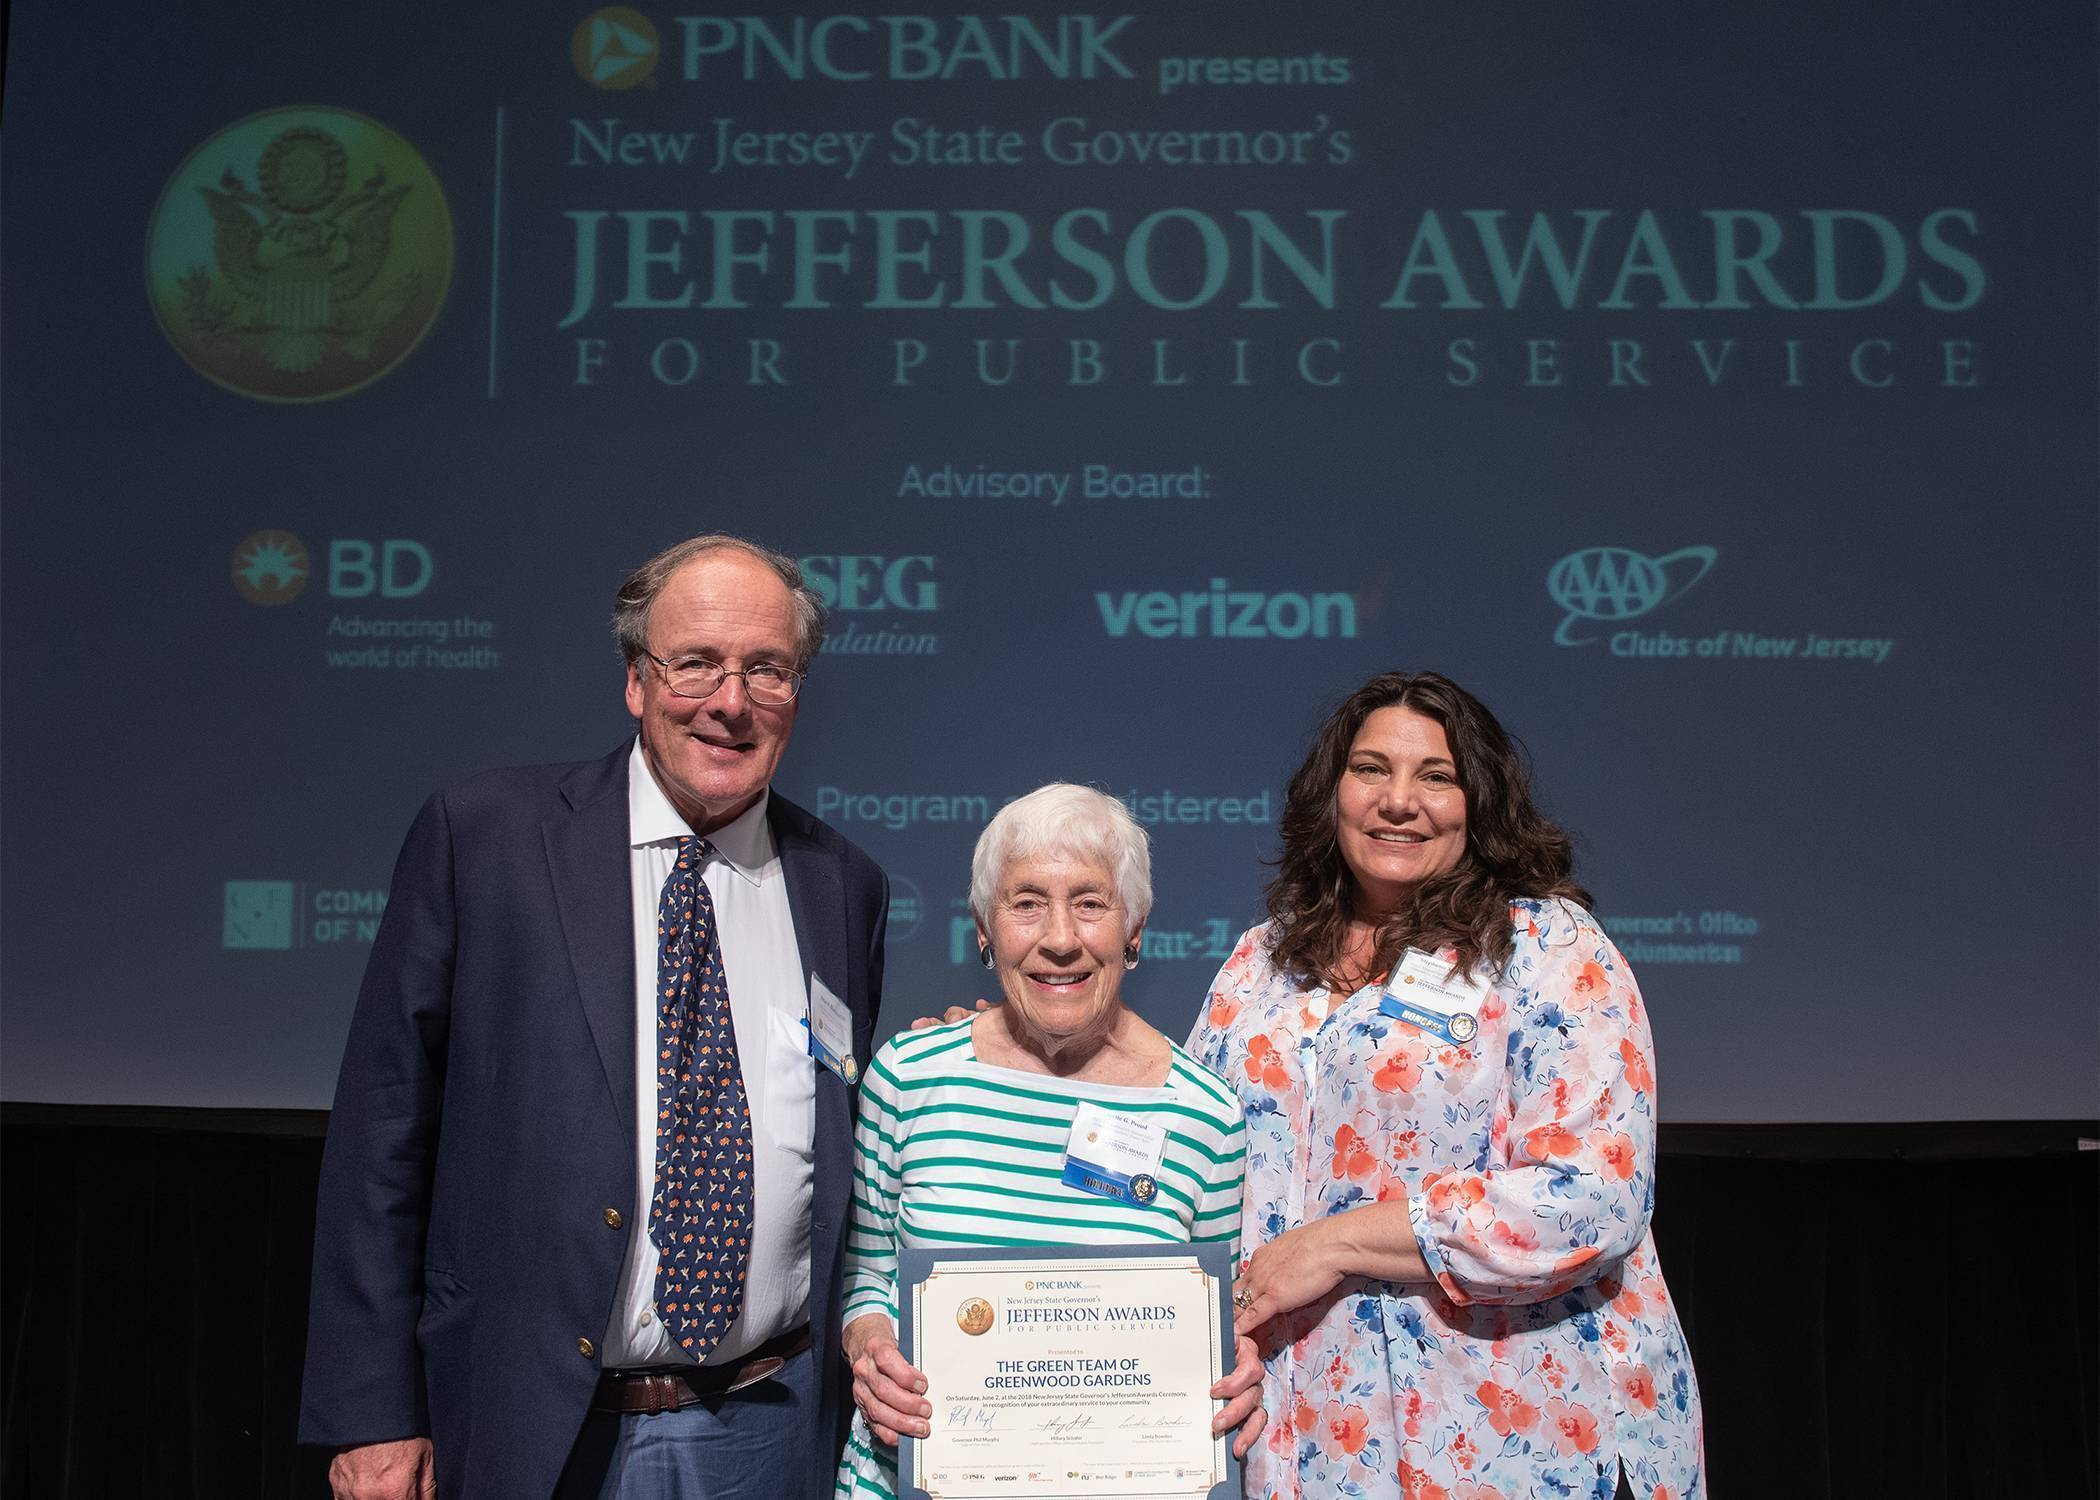 Short Hills Greenwood Gardens 39 Green Team Honored With Jefferson Award For Public Service News